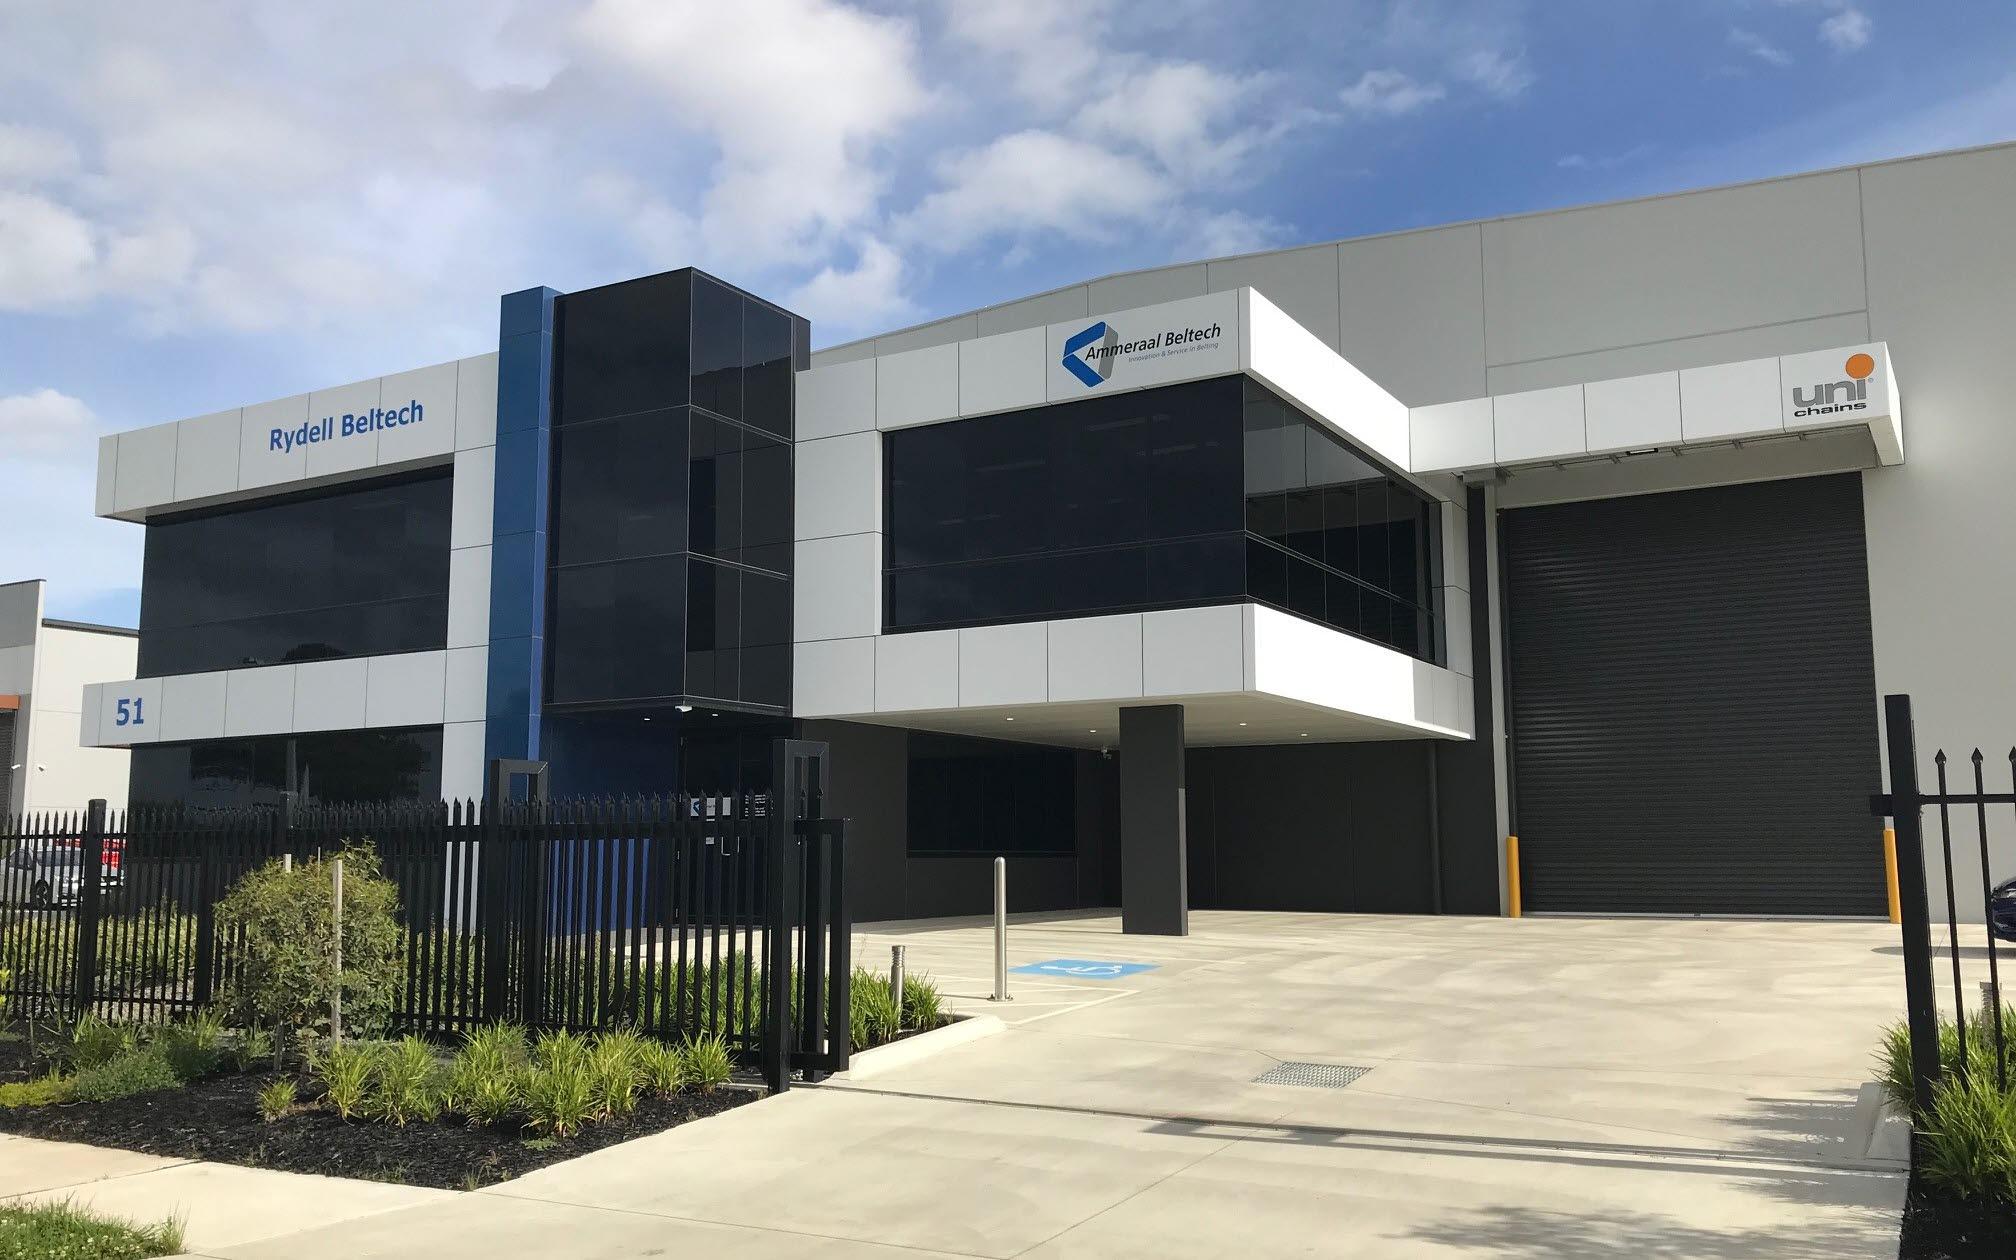 Ammeraal Beltech Australia (a.k.a. Rydell Beltech) - HQ and Administration